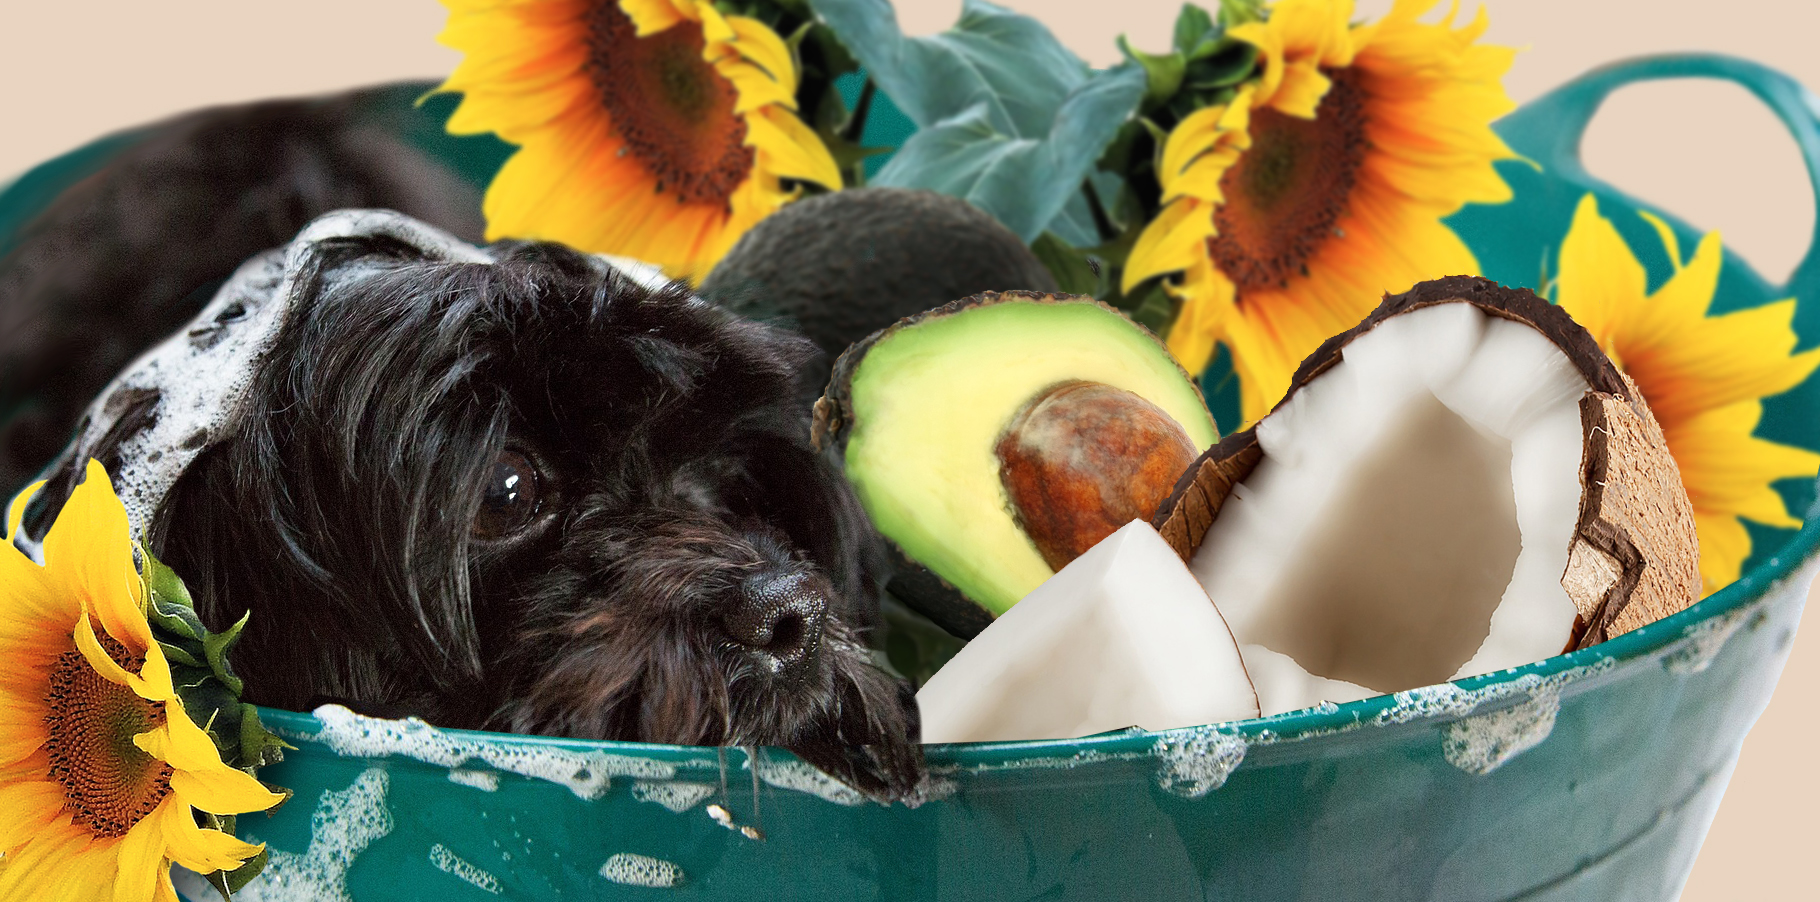 Our Pet Shampoo contains raw sunflower oil to nourish, coconut oil to clean and lather, and avocado oil to soothe. Bring your own dog.